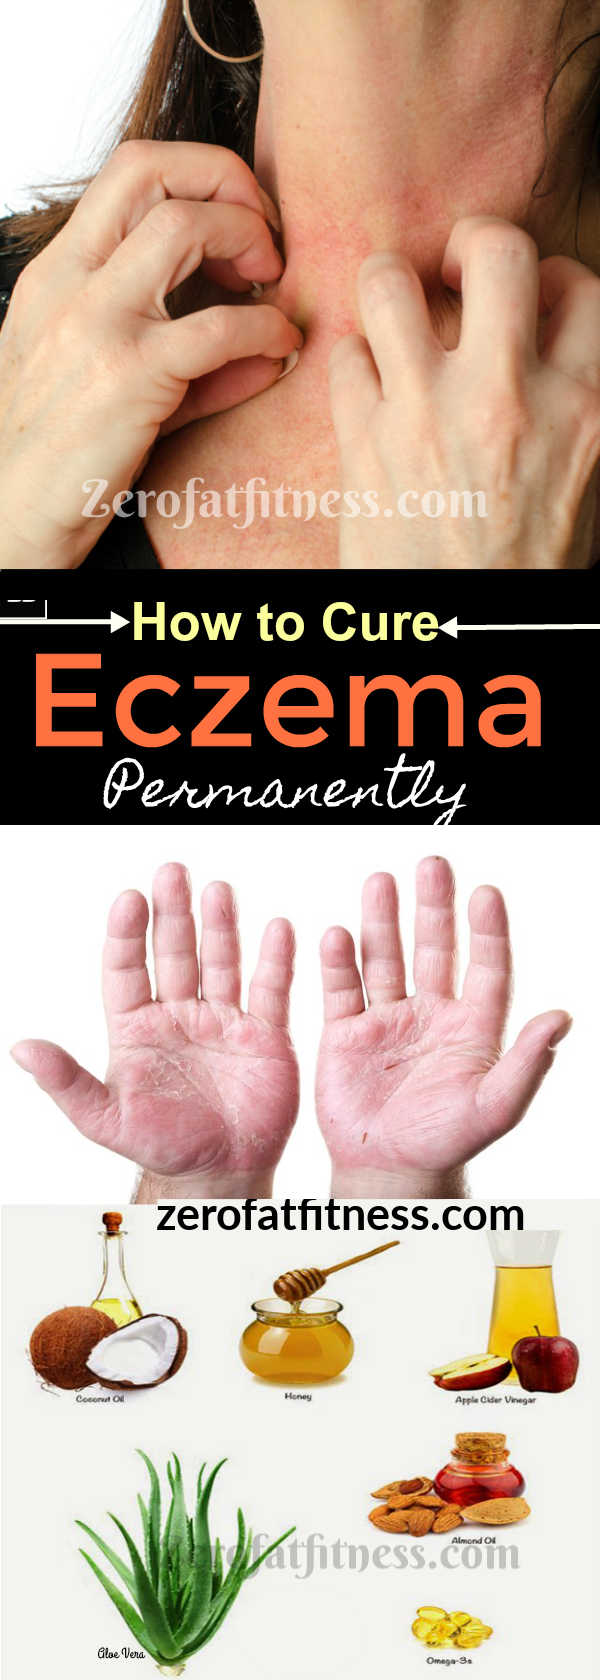 Eczema Treatments - Best Home Remedies to Get Rid of Eczema Fast and Permanently